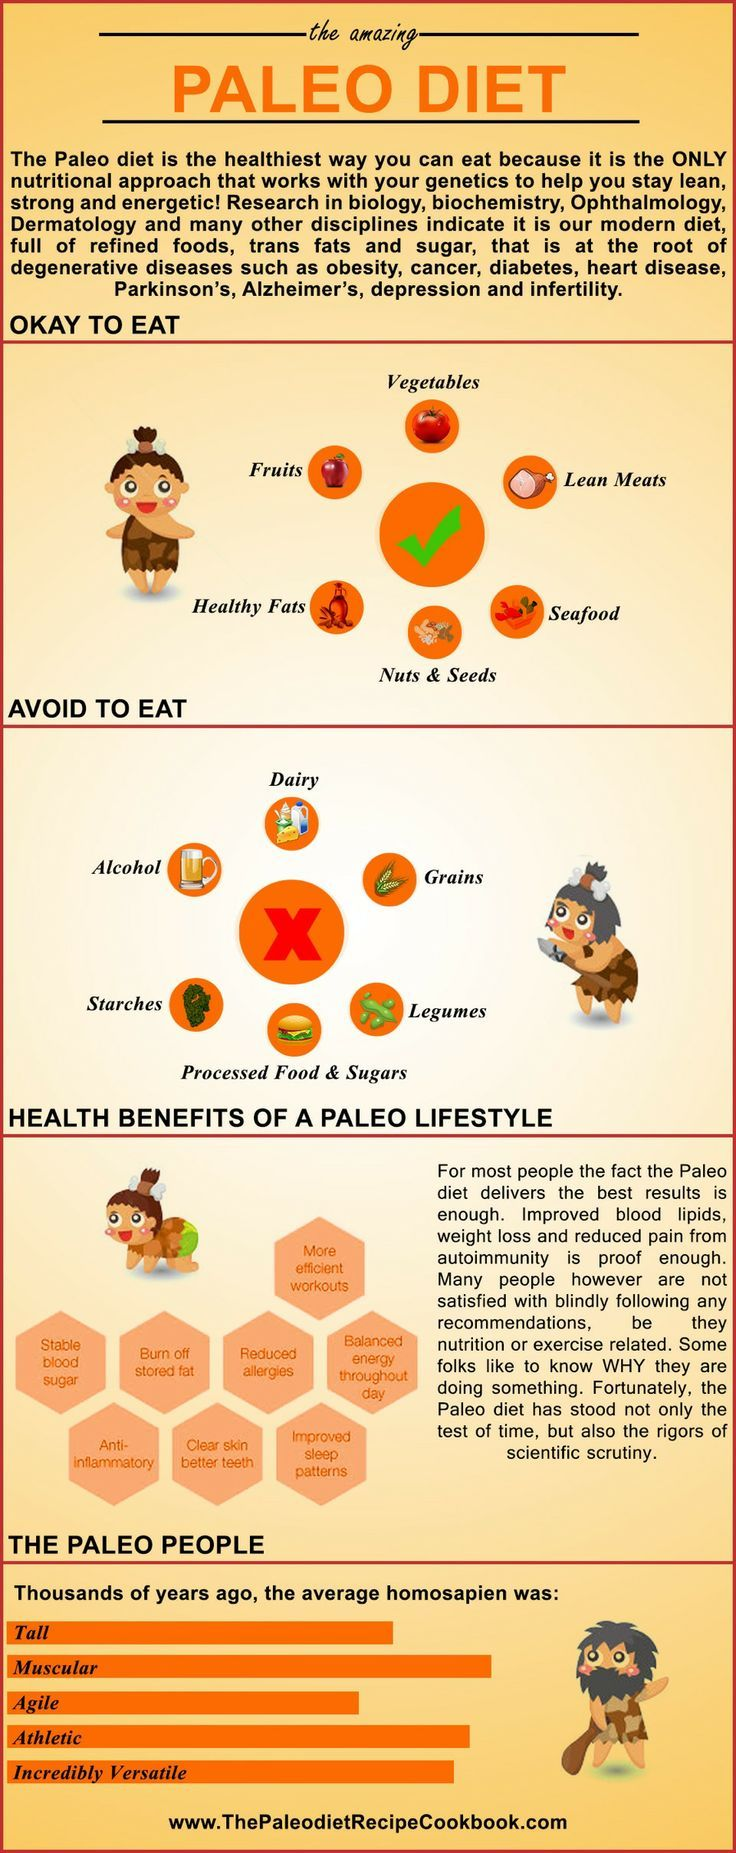 The Paleo Diet Has Many Health Benefits Including Weight Loss